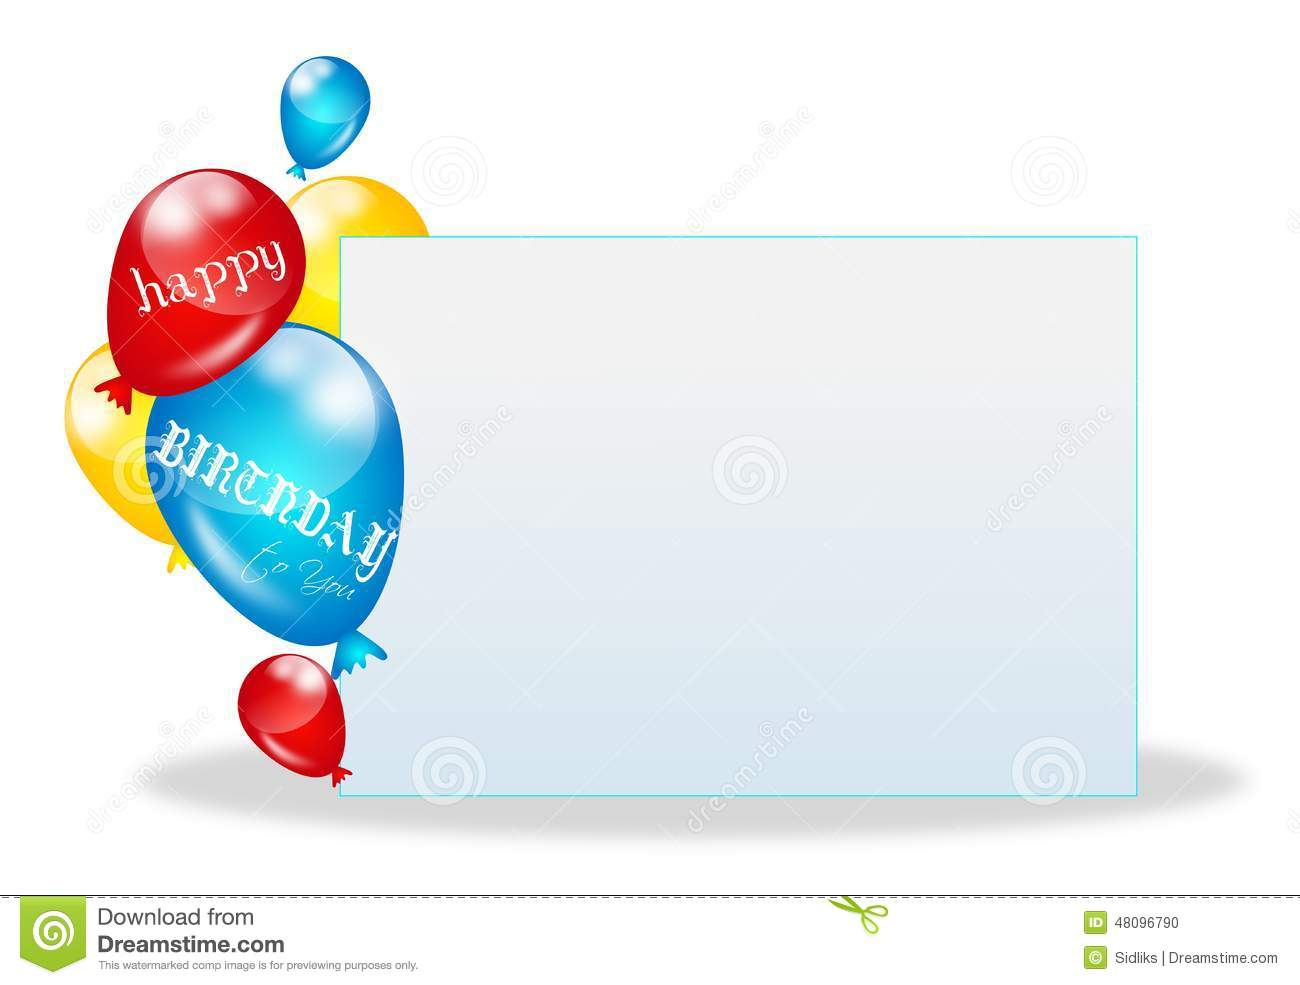 blank birthday card maker free printable ; blank-birthday-cards-amazing-design-collection-card-for-your-best-birthday-card-ideas-happy-birthday-card-stock-illustration-image-48096790